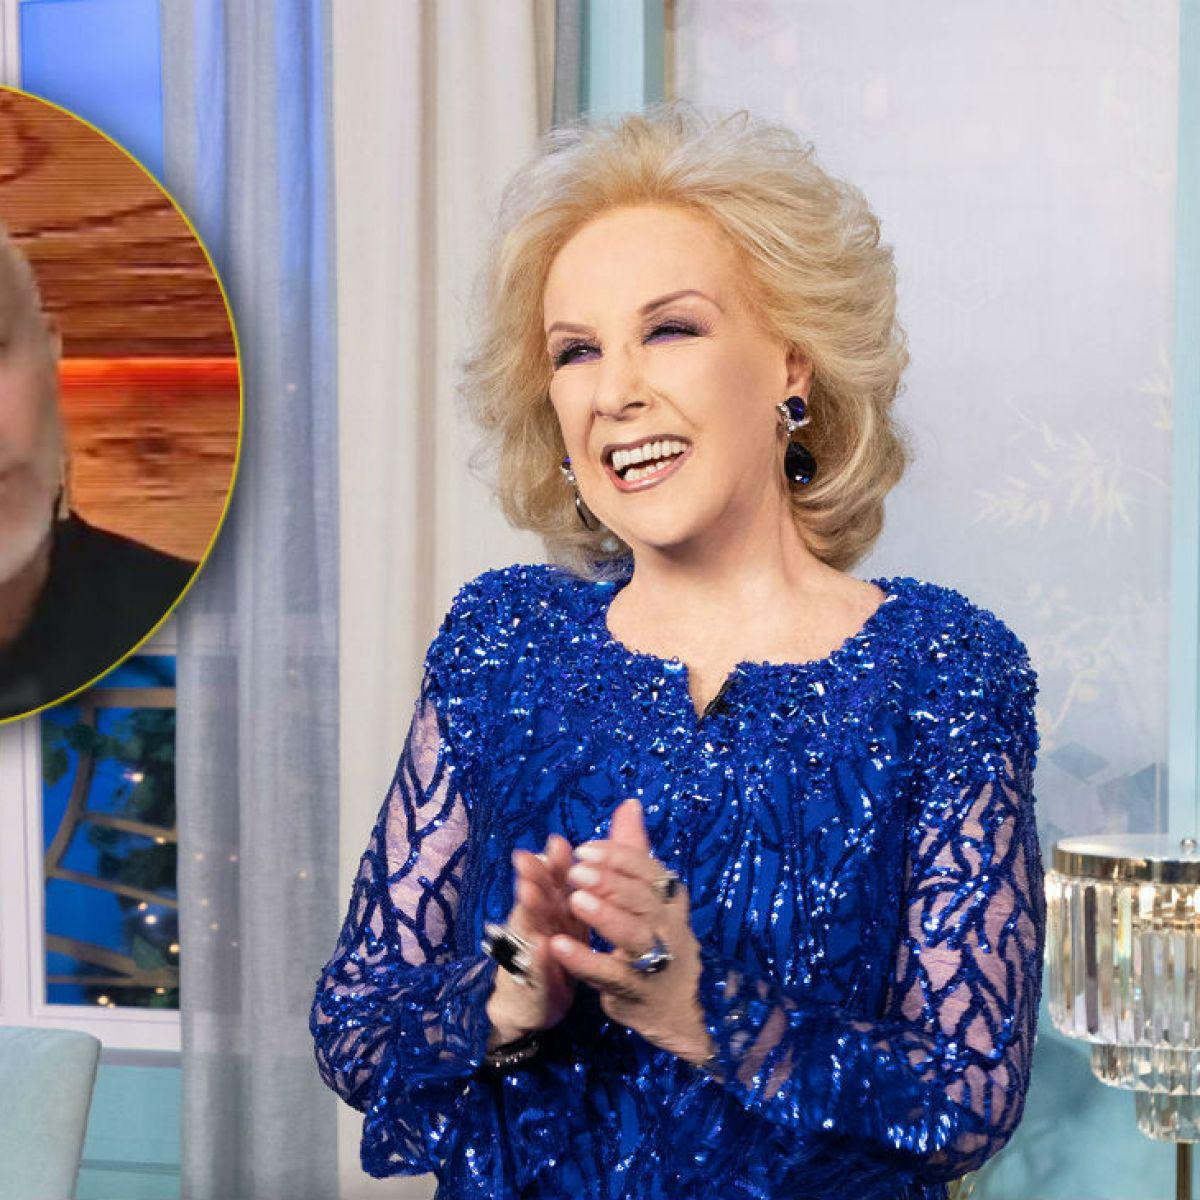 mirtha-legrand-andy-kusnetzoff-1103546